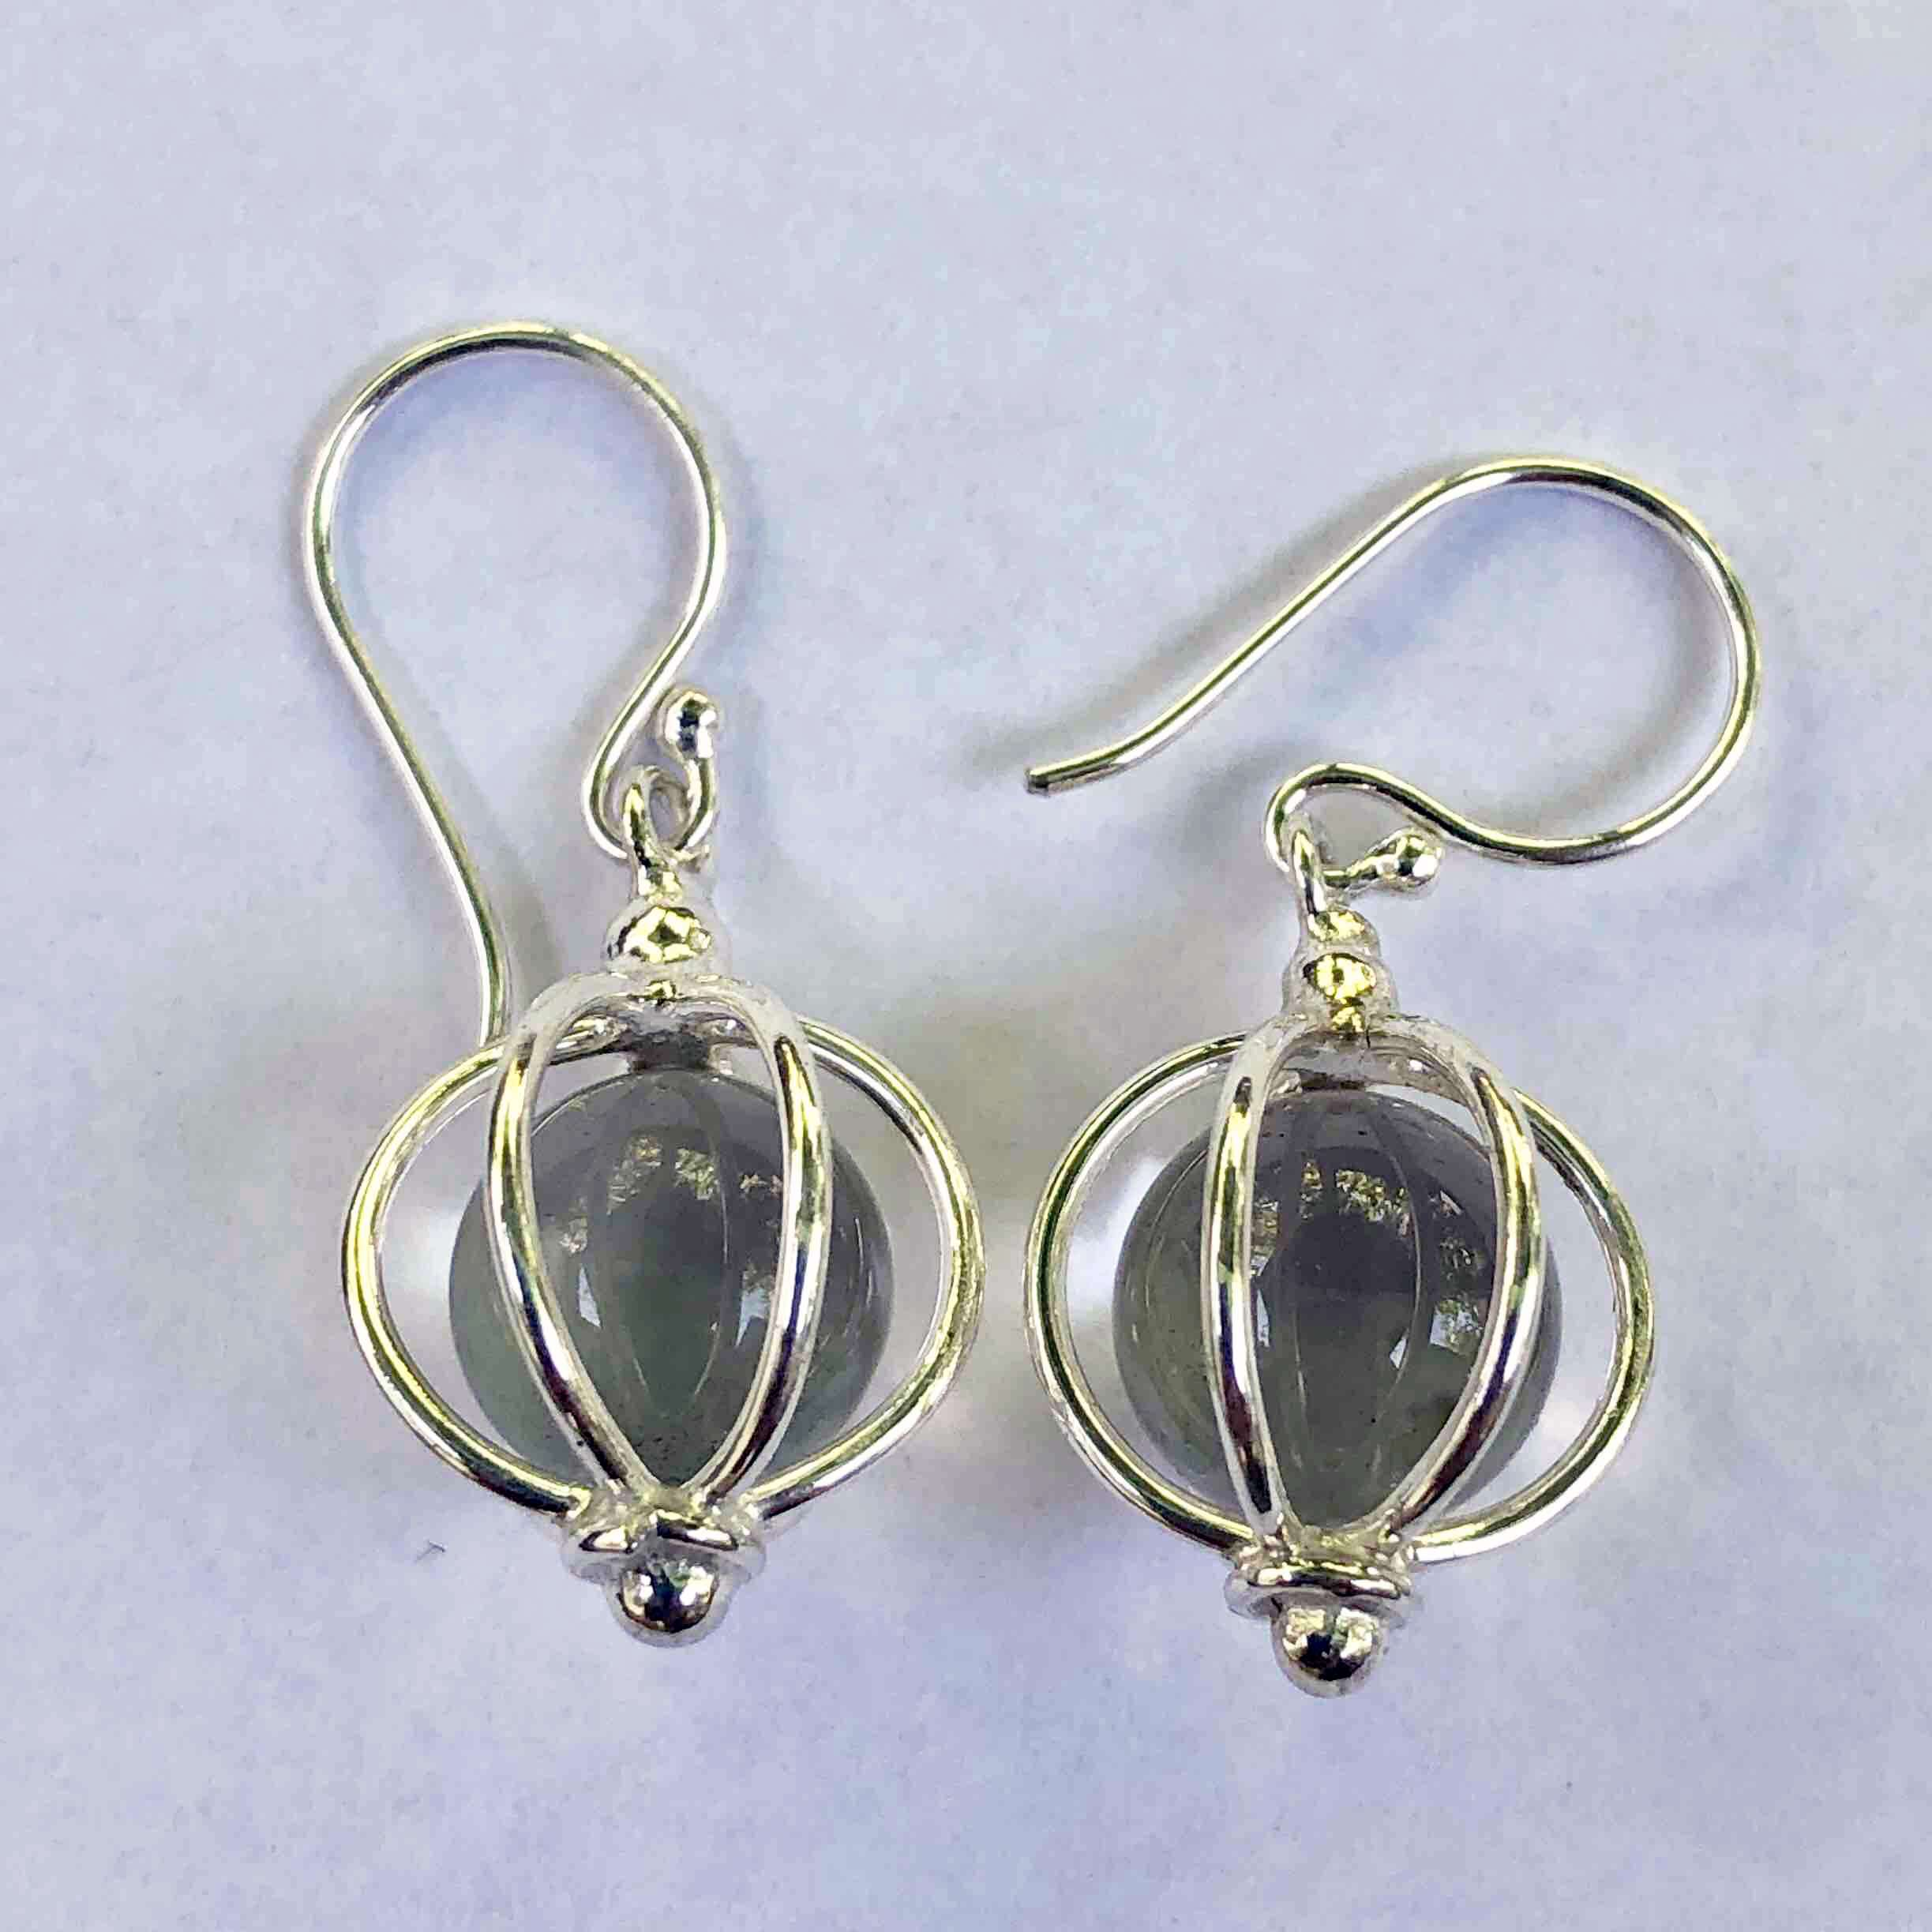 HANDMADE 925 BALI SILVER EARRINGS WITH MOONSTONE